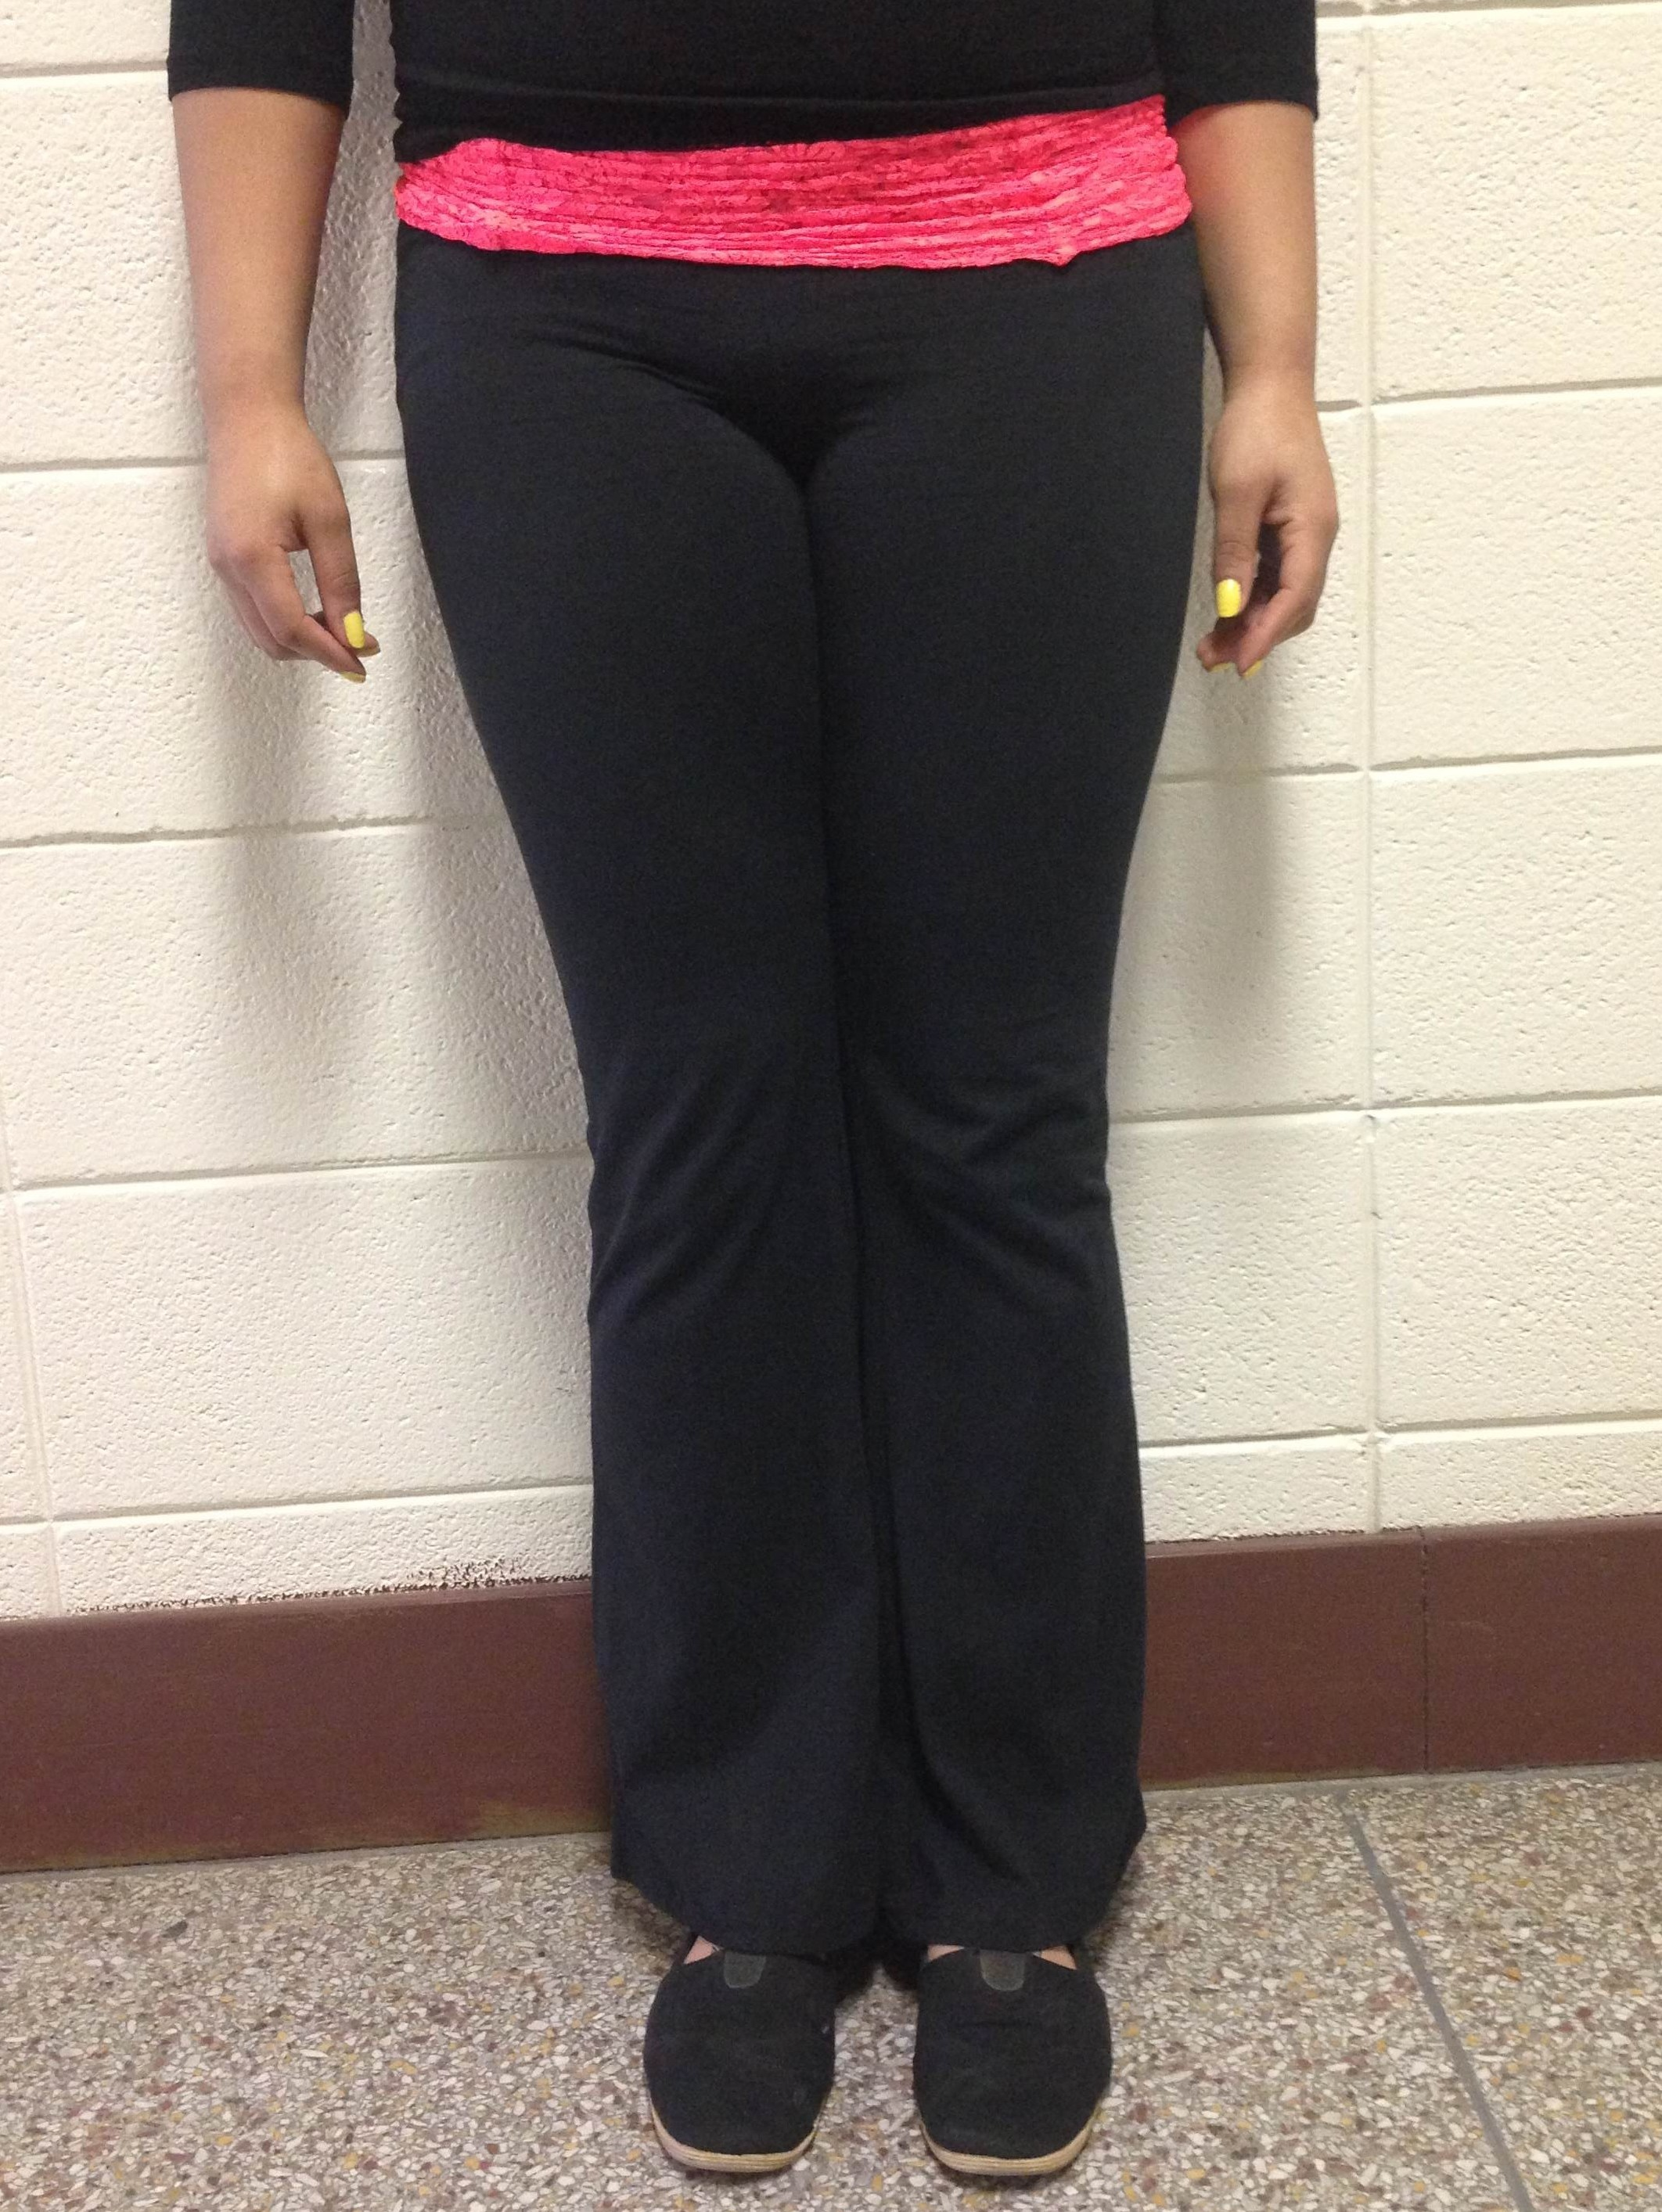 yoga pants inappropriate photo - 2